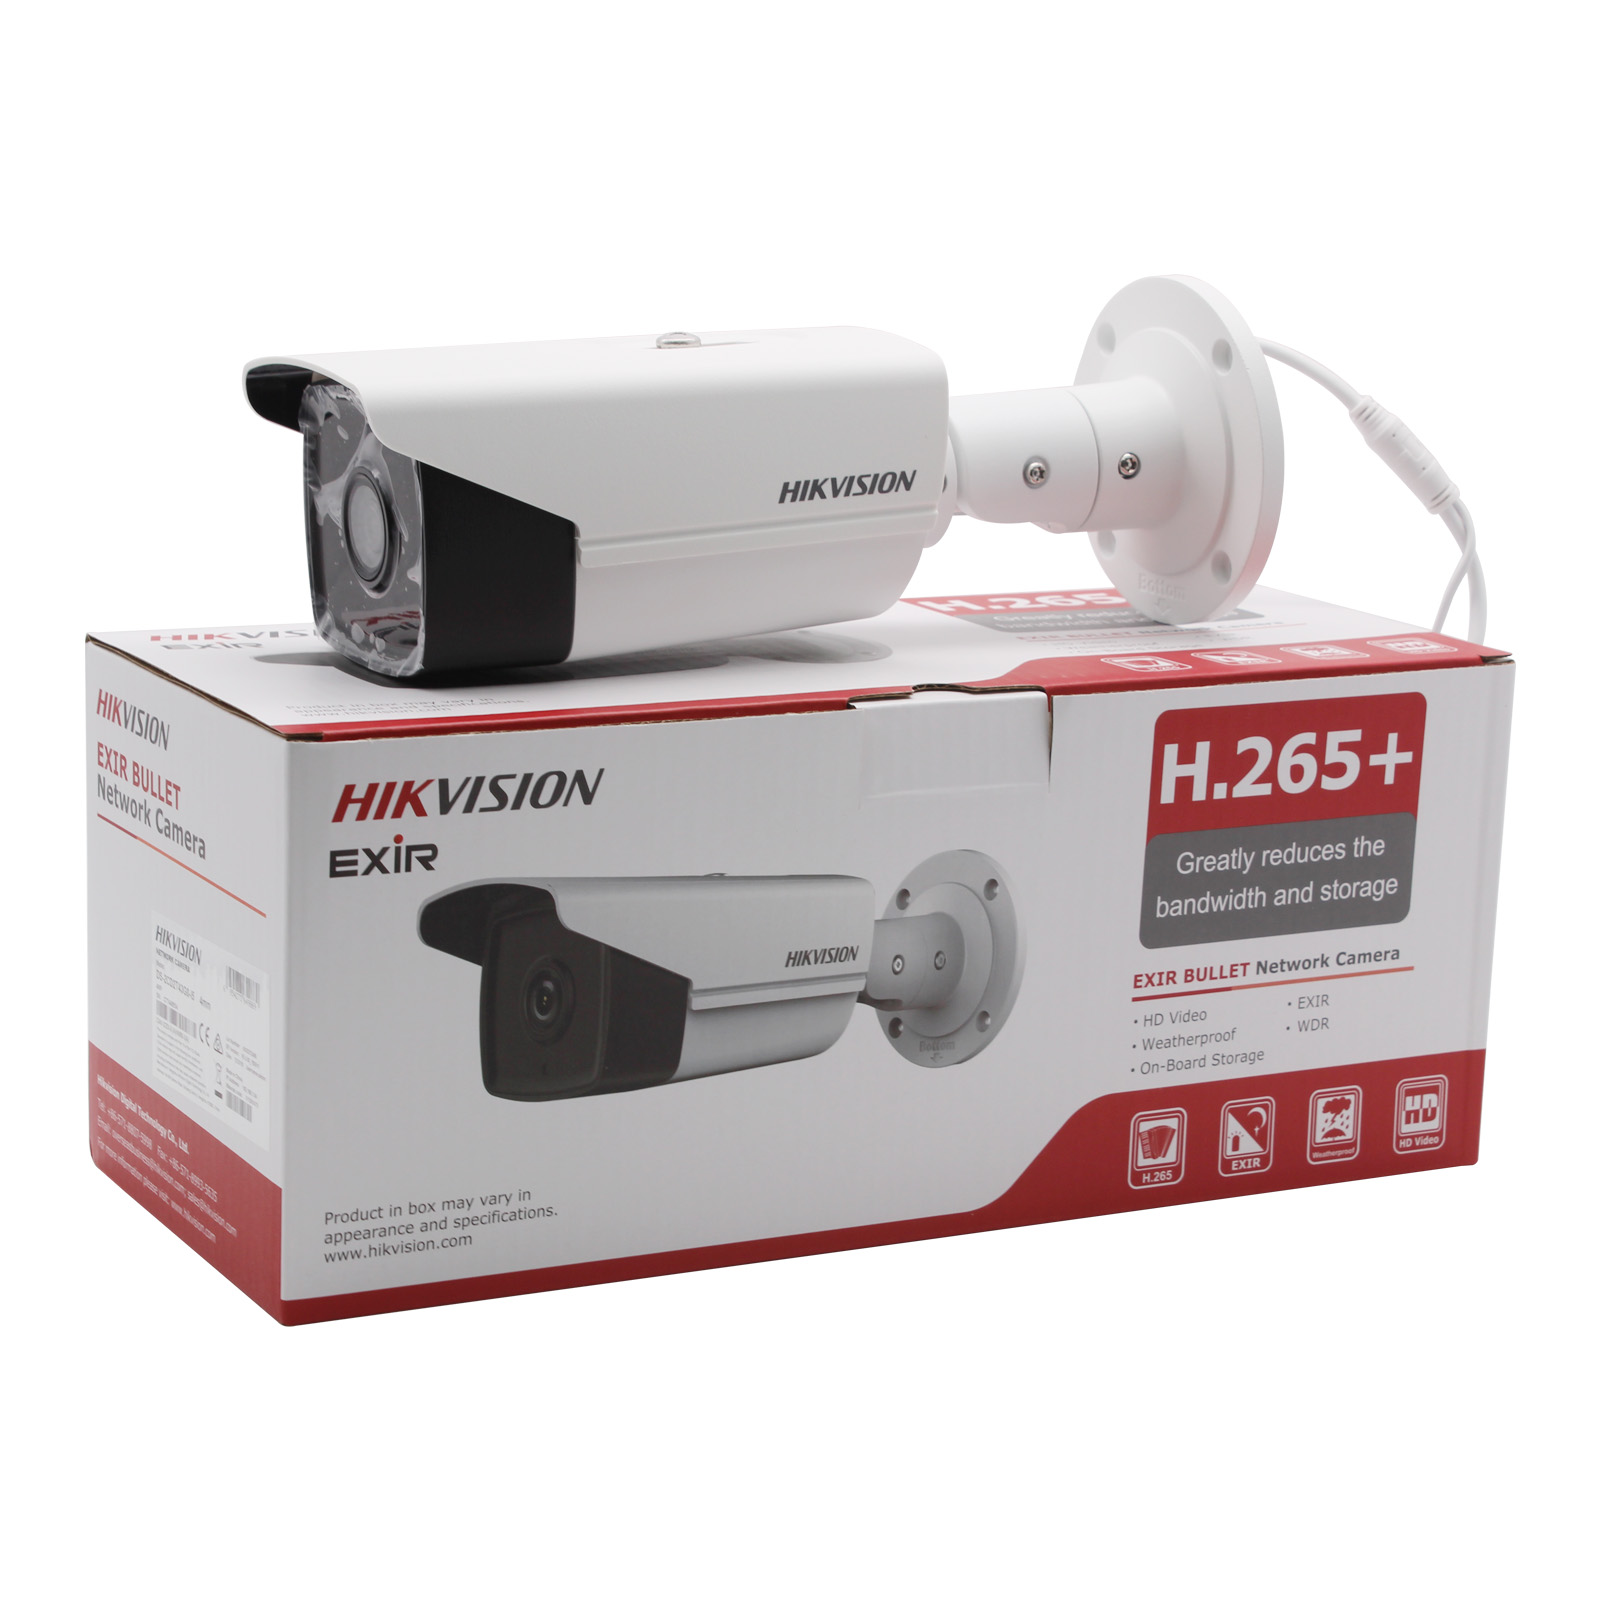 Image 5 - Hikvision New Video Surveillance Camera outdoor DS 2CD2T43G0 I5 4MP IR 50M Bullet POE IP Camera H.265+ Replace DS 2CD2T42WD I5-in Surveillance Cameras from Security & Protection